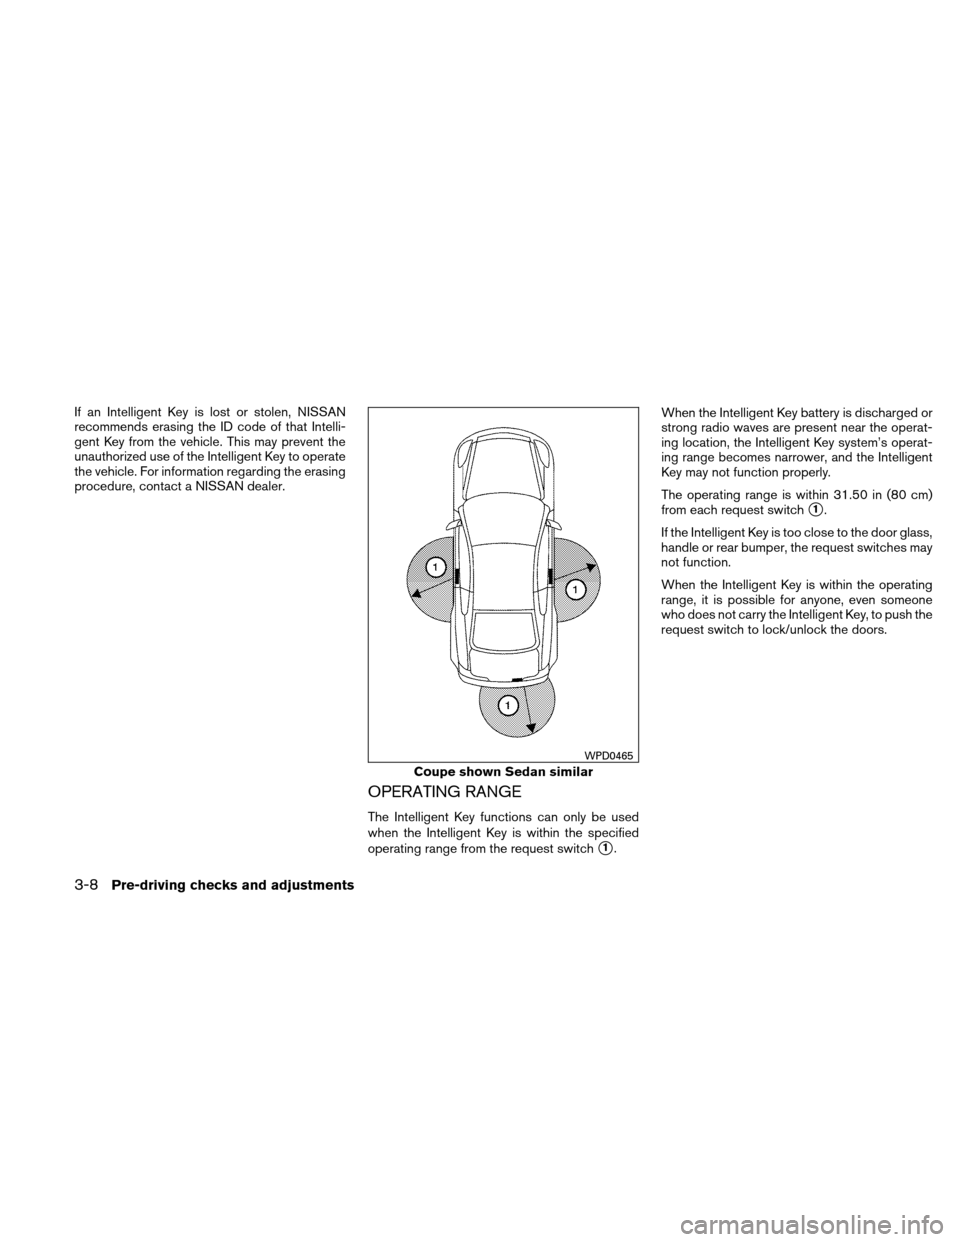 NISSAN ALTIMA COUPE 2010 D32 / 4.G Owners Manual, Page 139